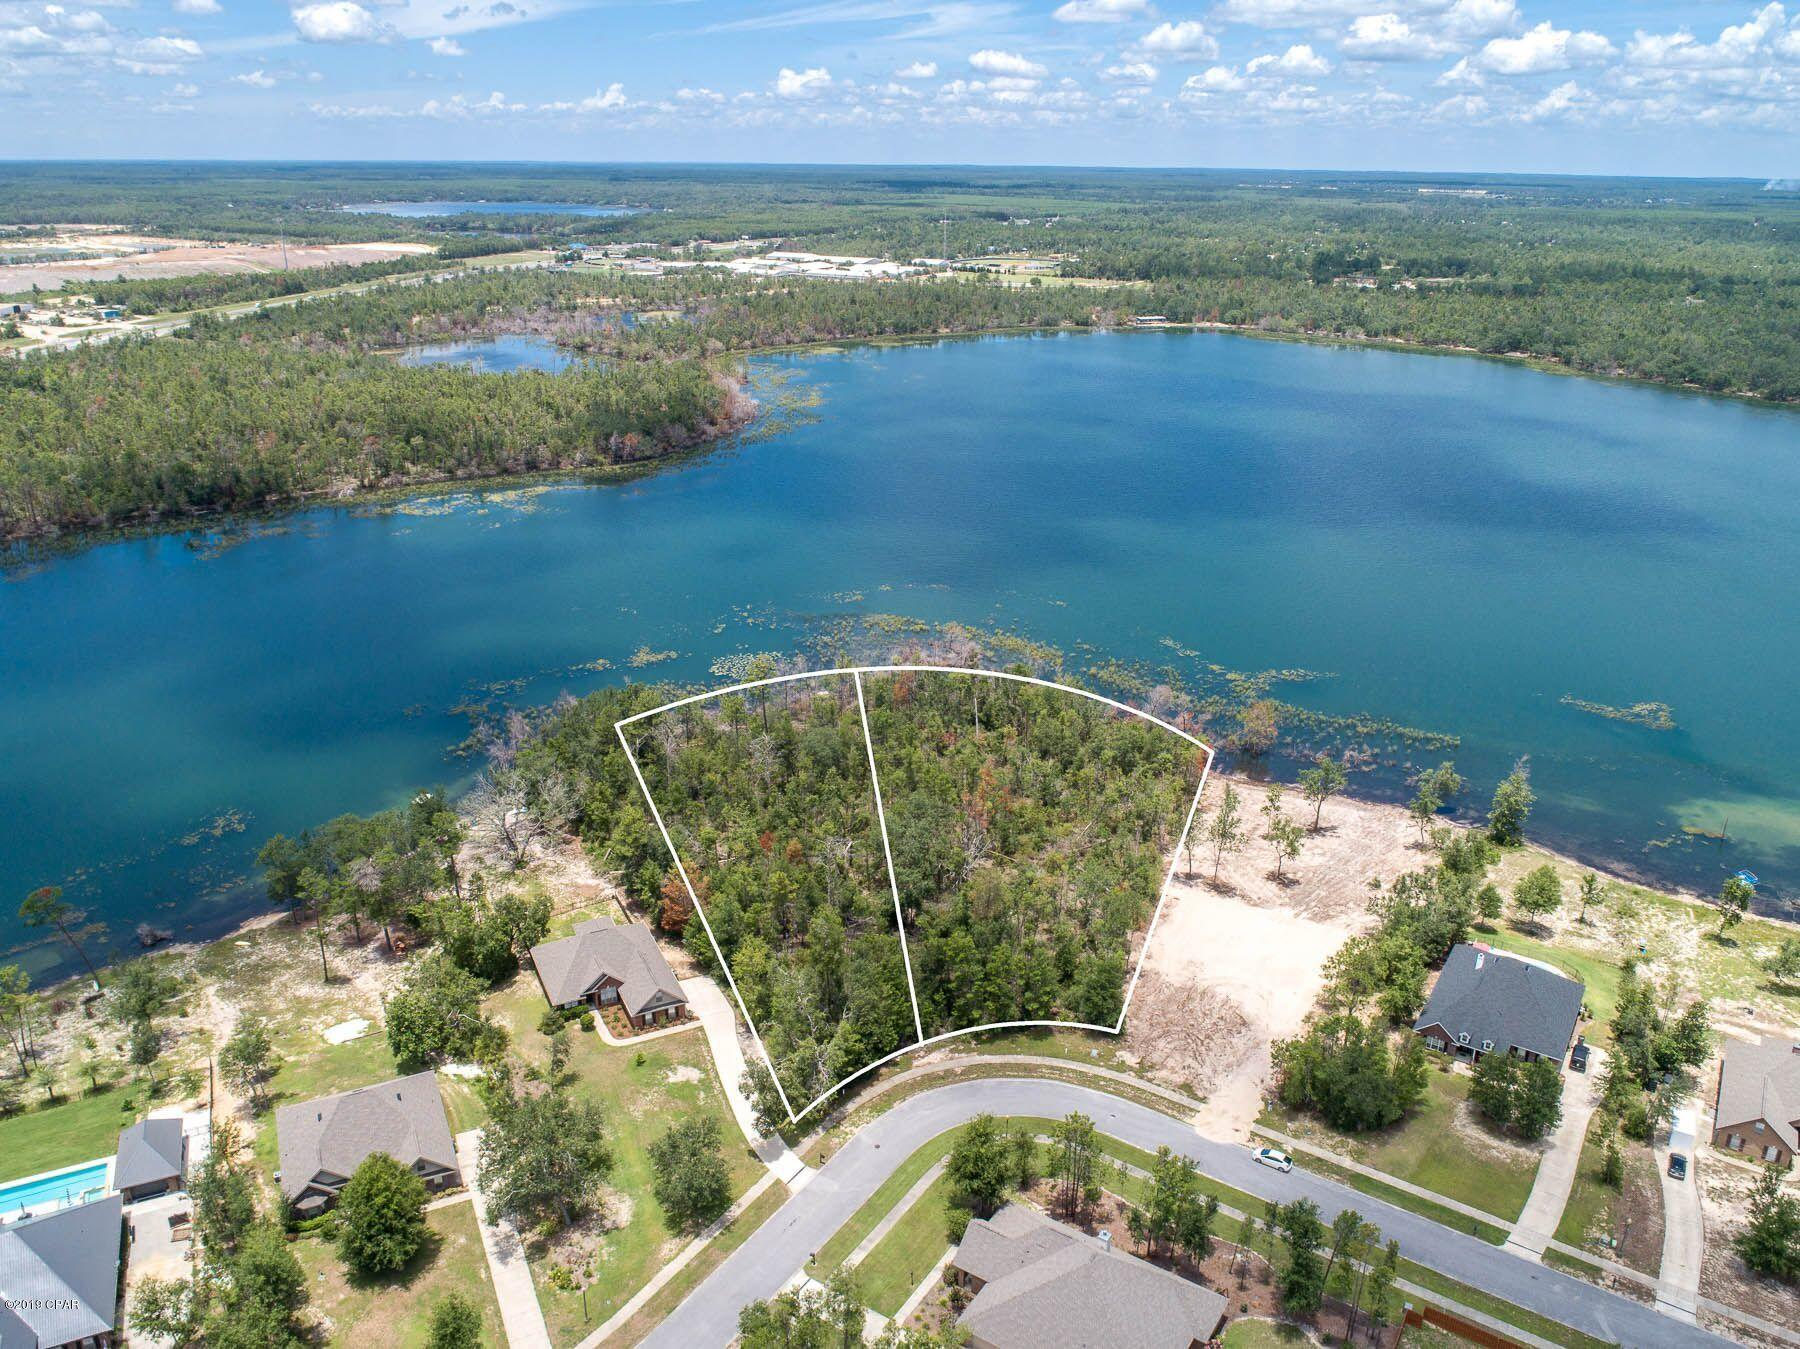 Photo of 115 Lake Merial Shores Drive Panama City FL 32409